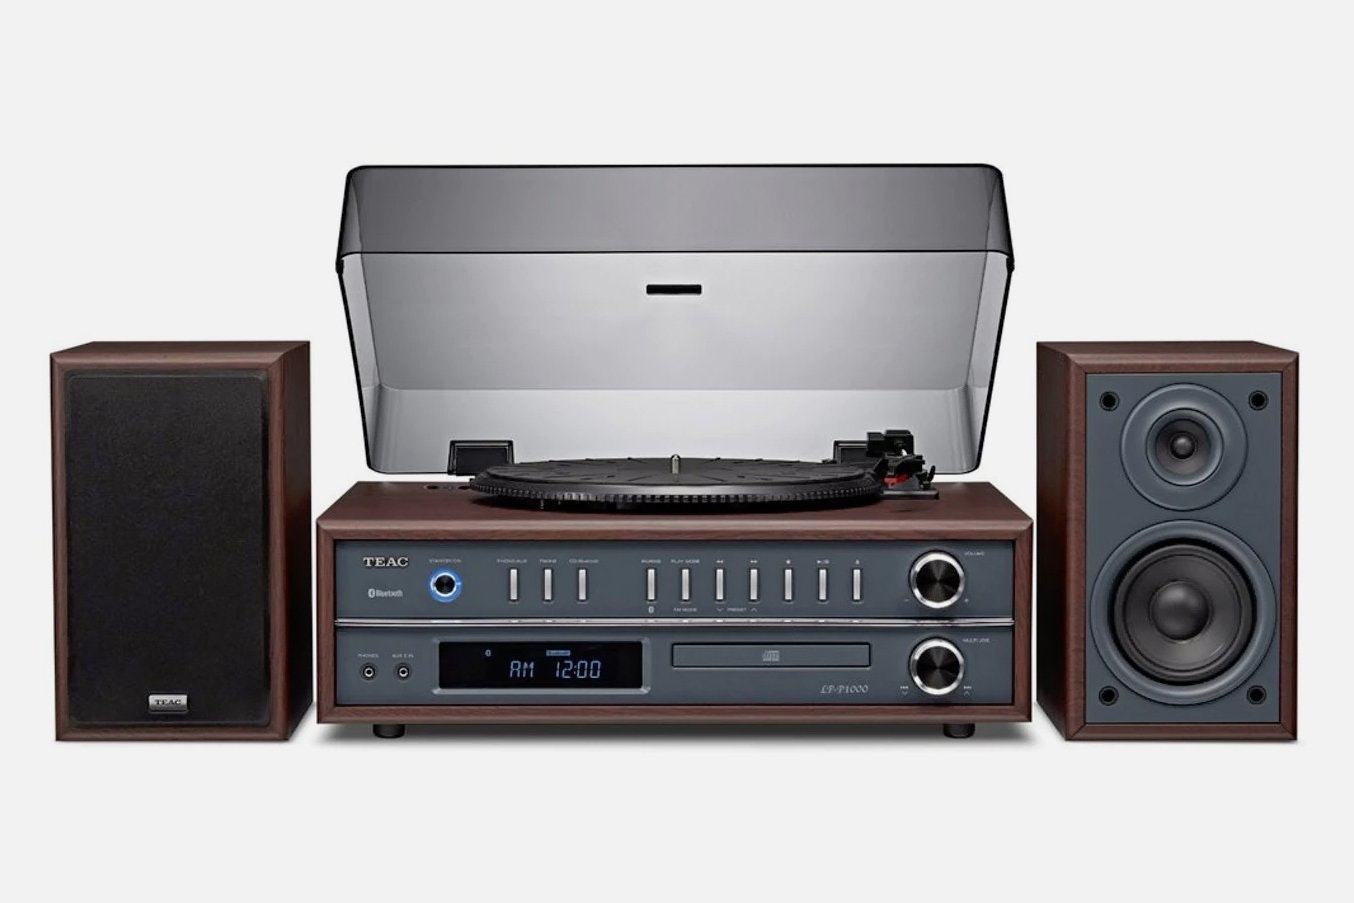 Teac LP-P1000 All-in-one turntable